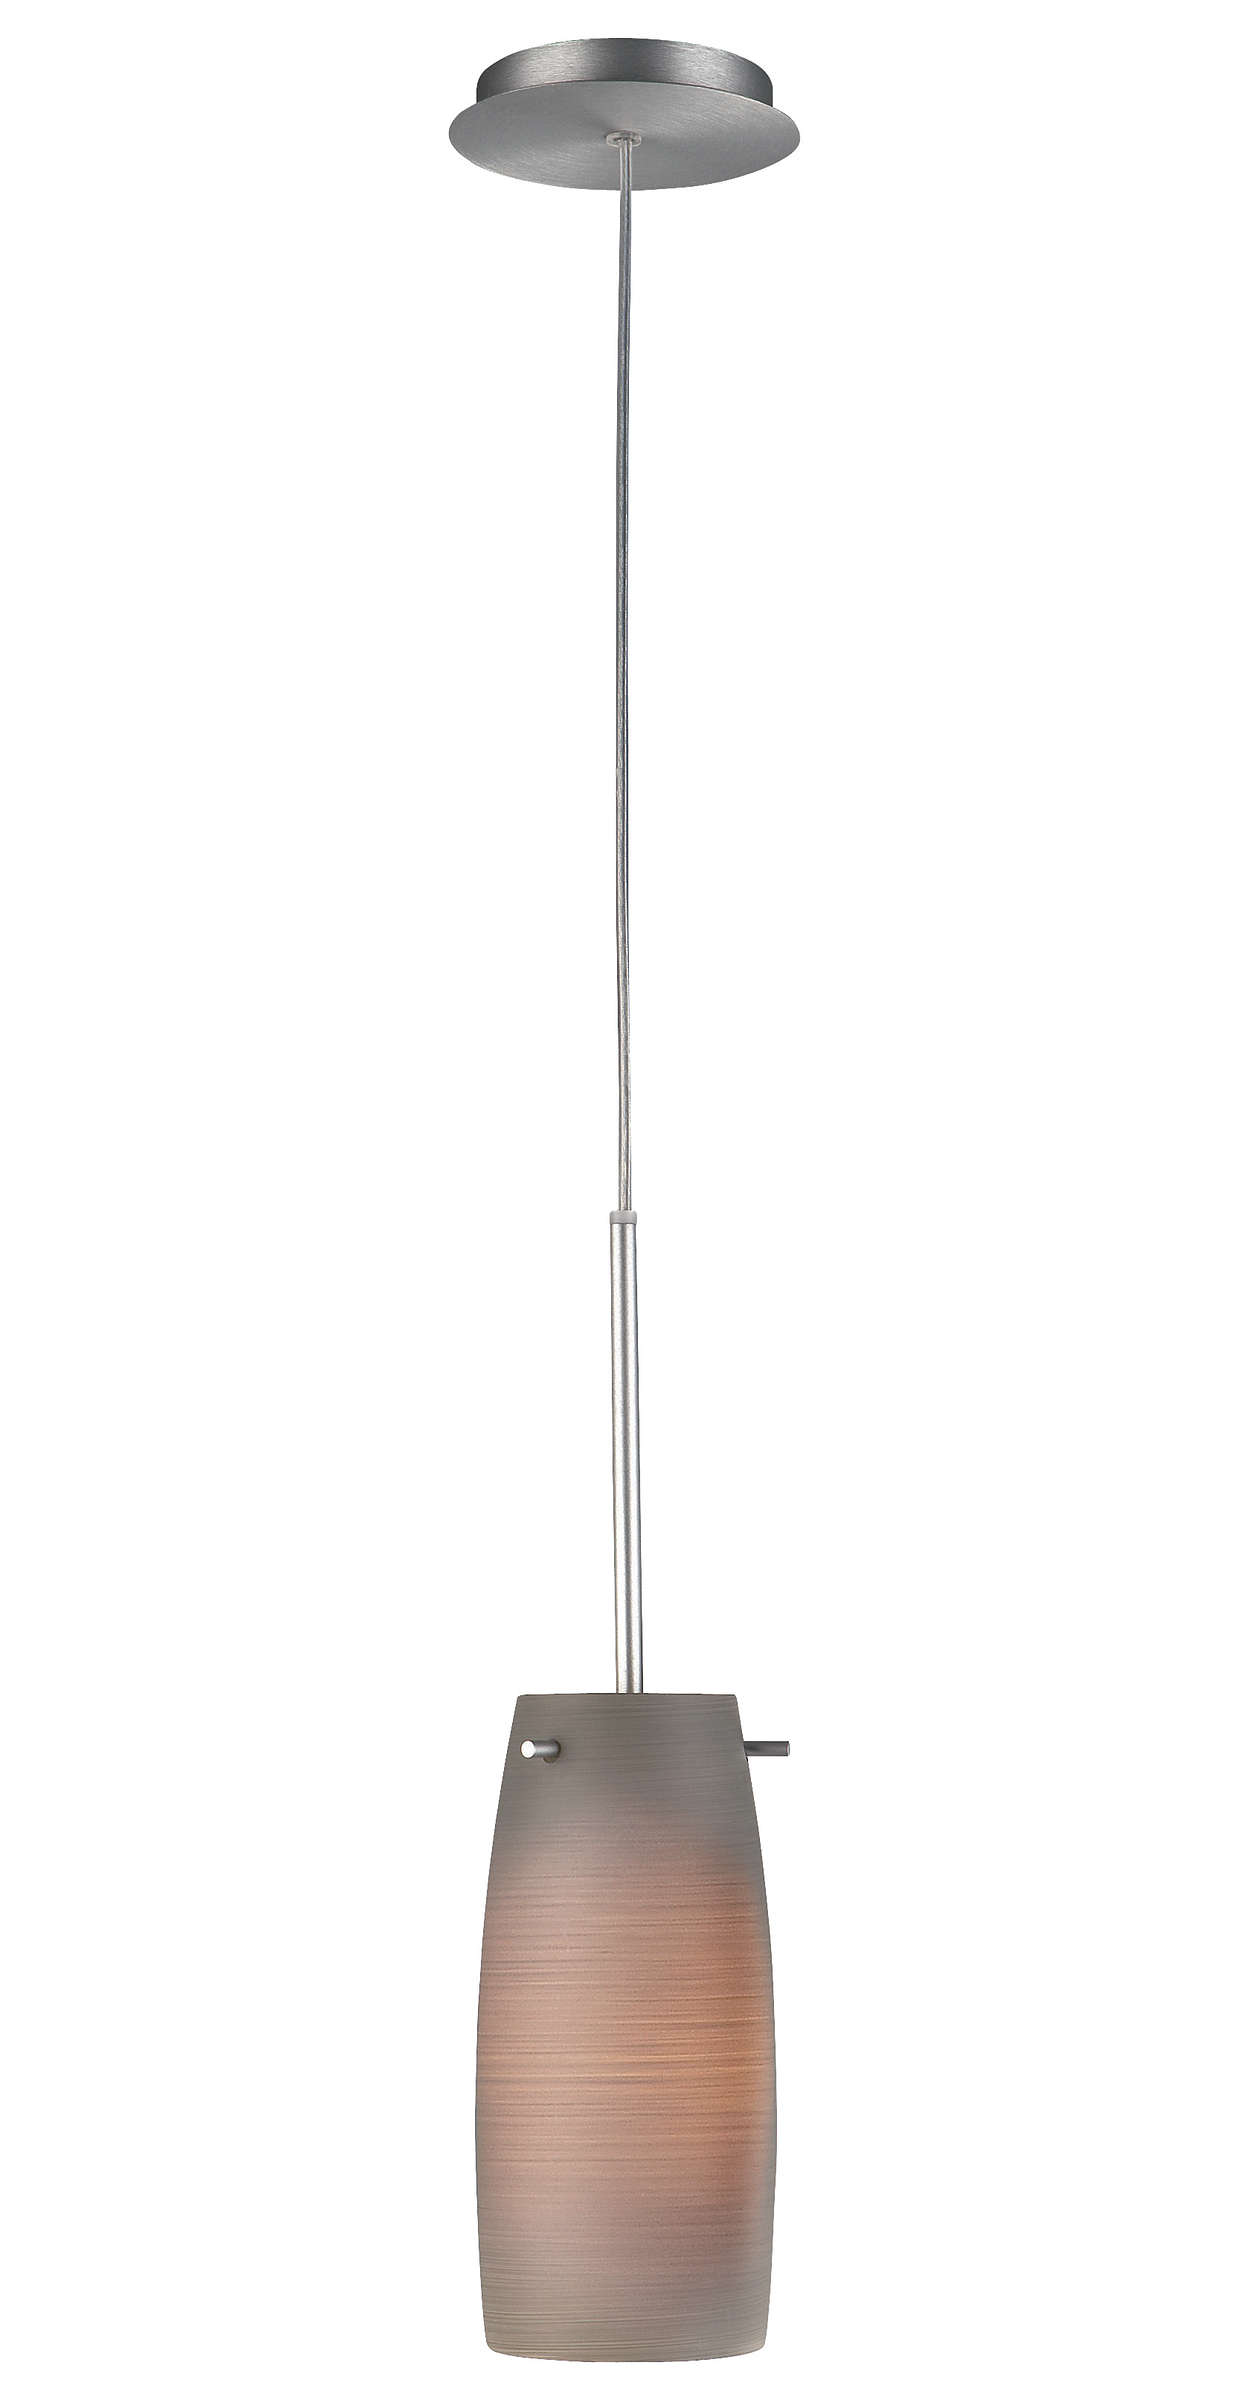 Lavosi 1-light Pendant in Satin Nickel finish